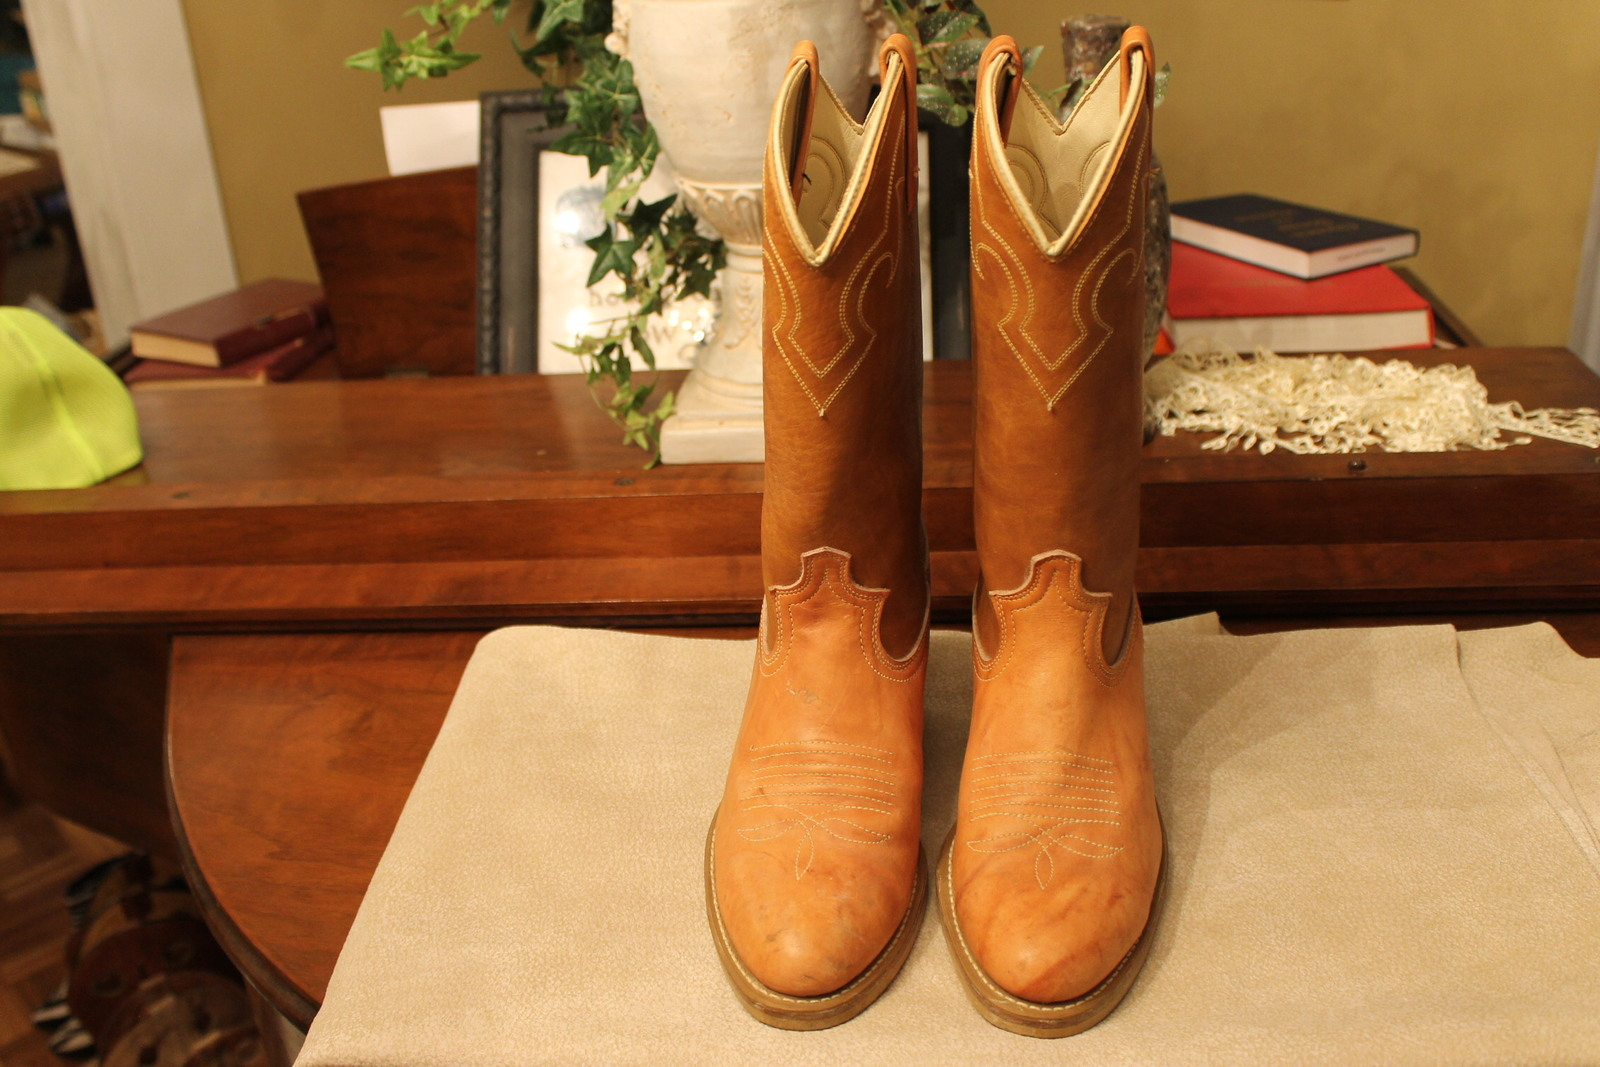 b57368f2645 Men's Western Vintage Acme Dingo Boots and 37 similar items